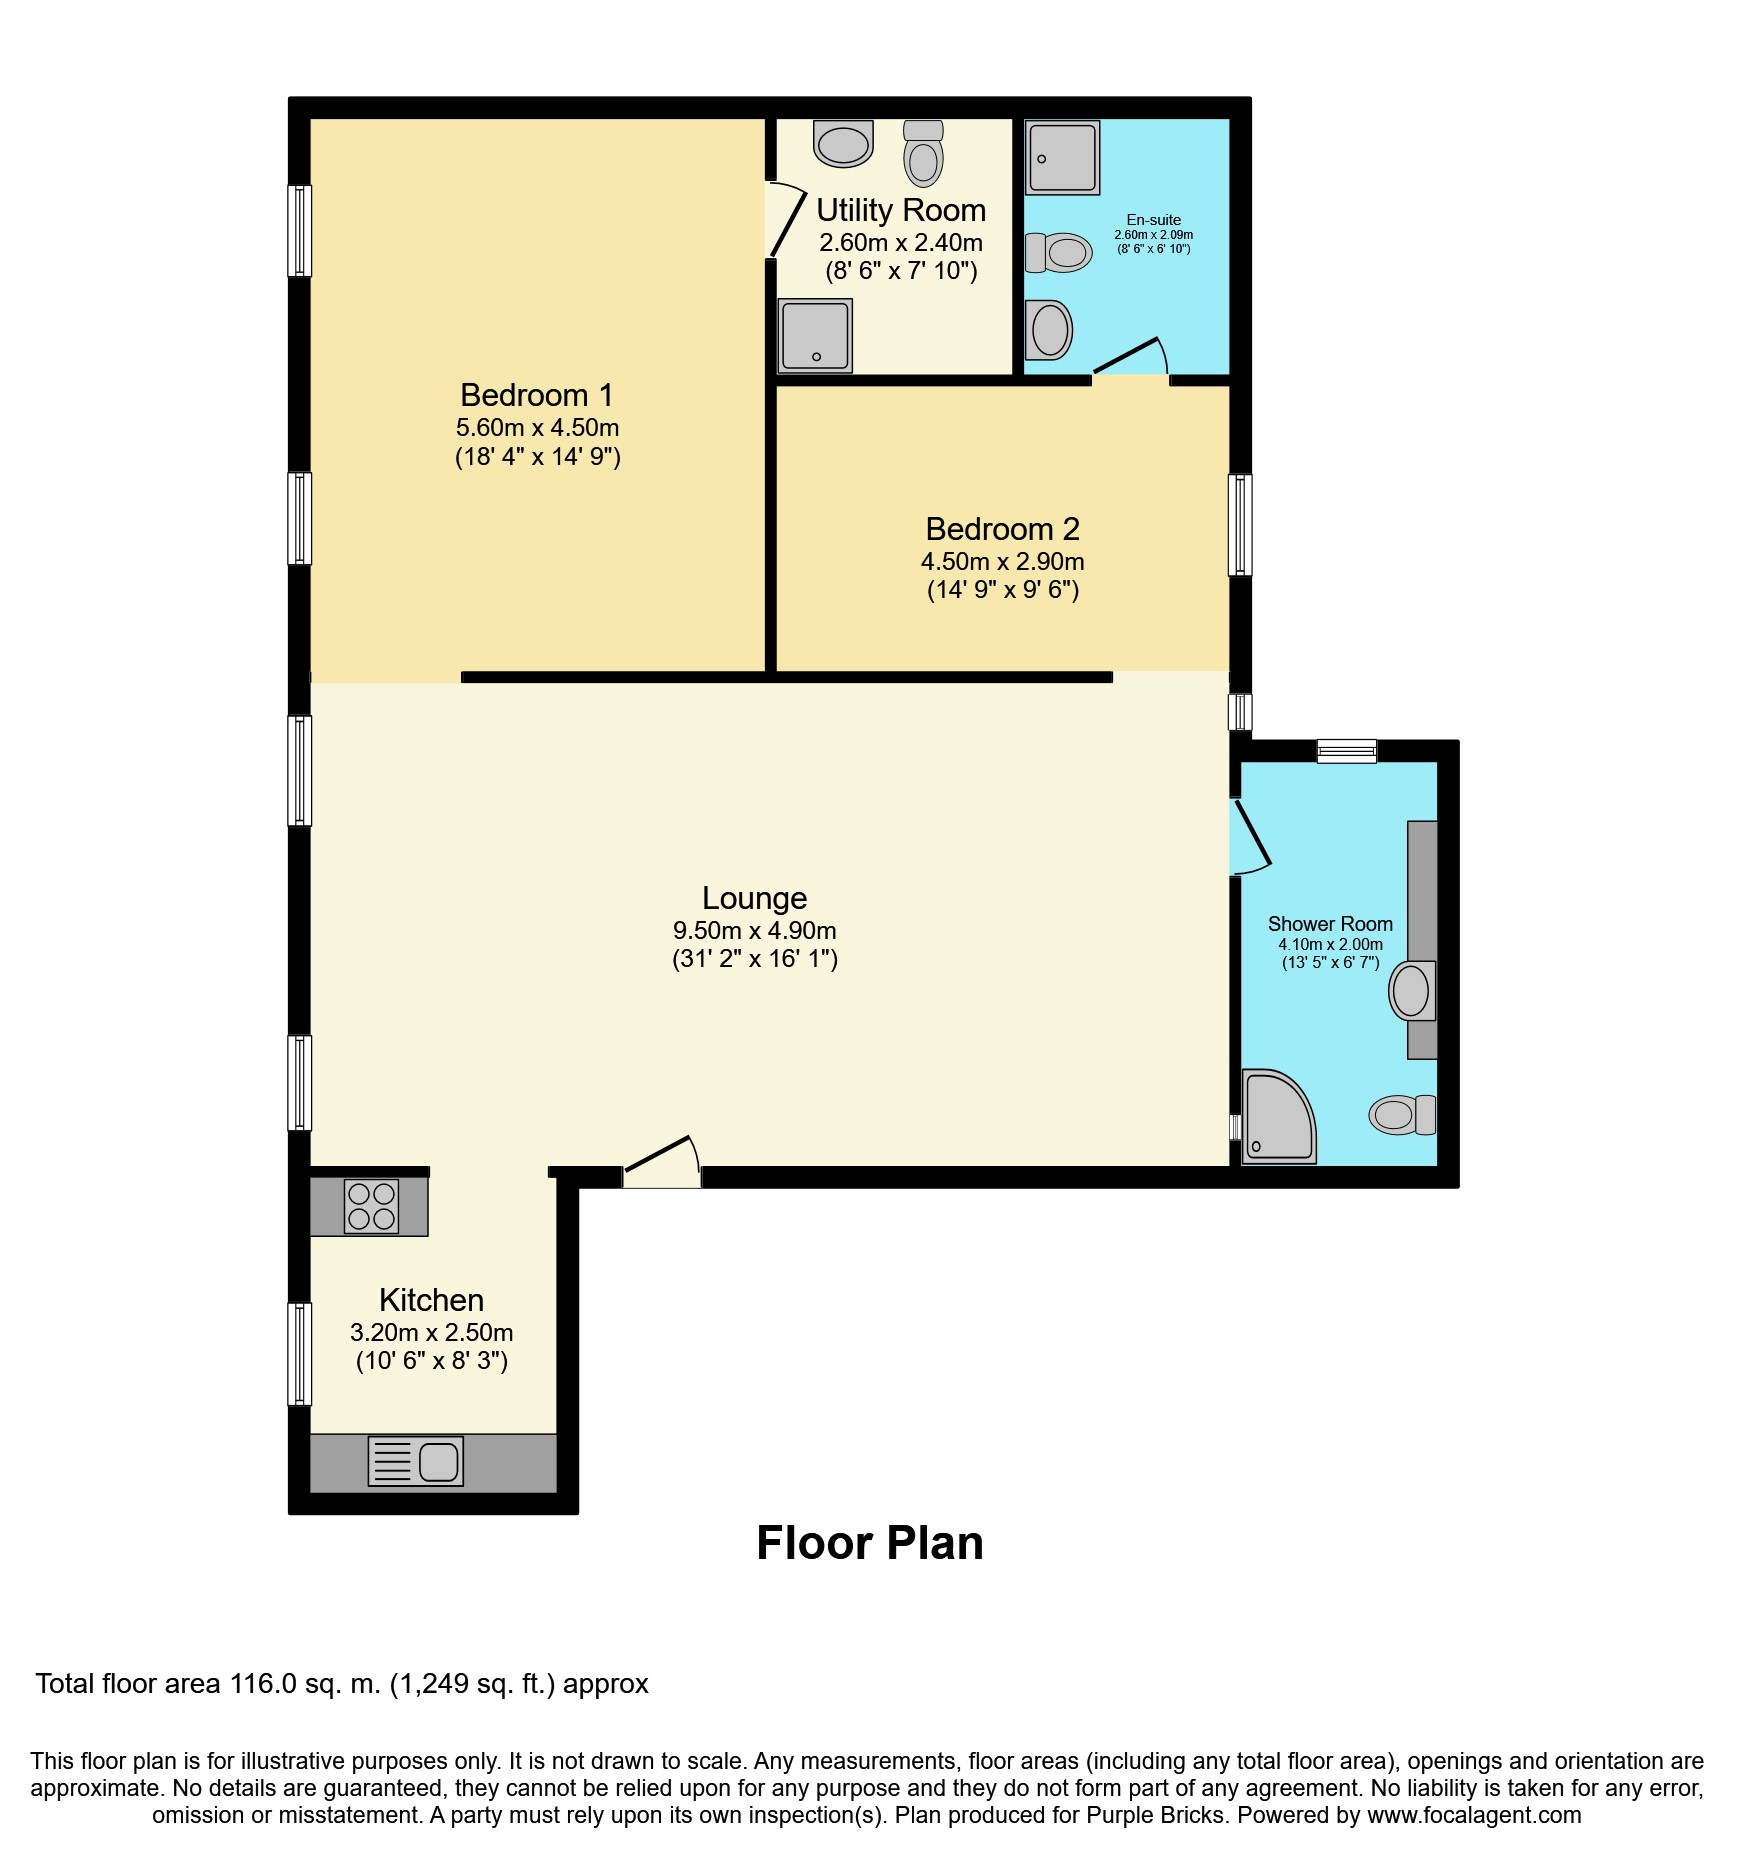 Two Bedroom Apartments London: 16 Whitehall, London